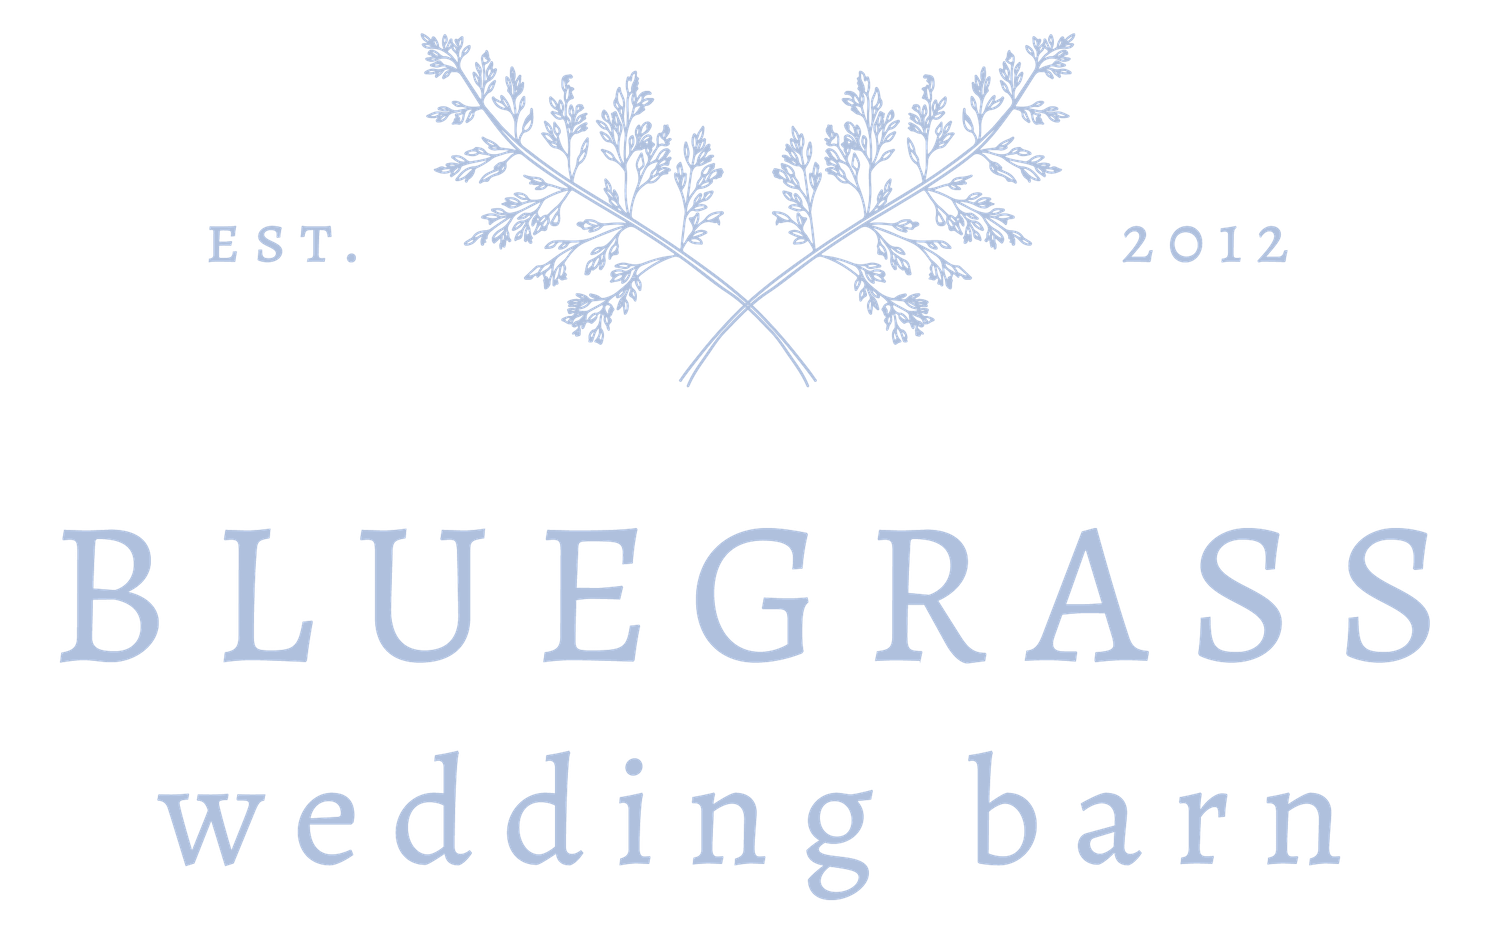 Bluegrass Wedding Barn | A Full-Service Wedding Experience in Danville, KY